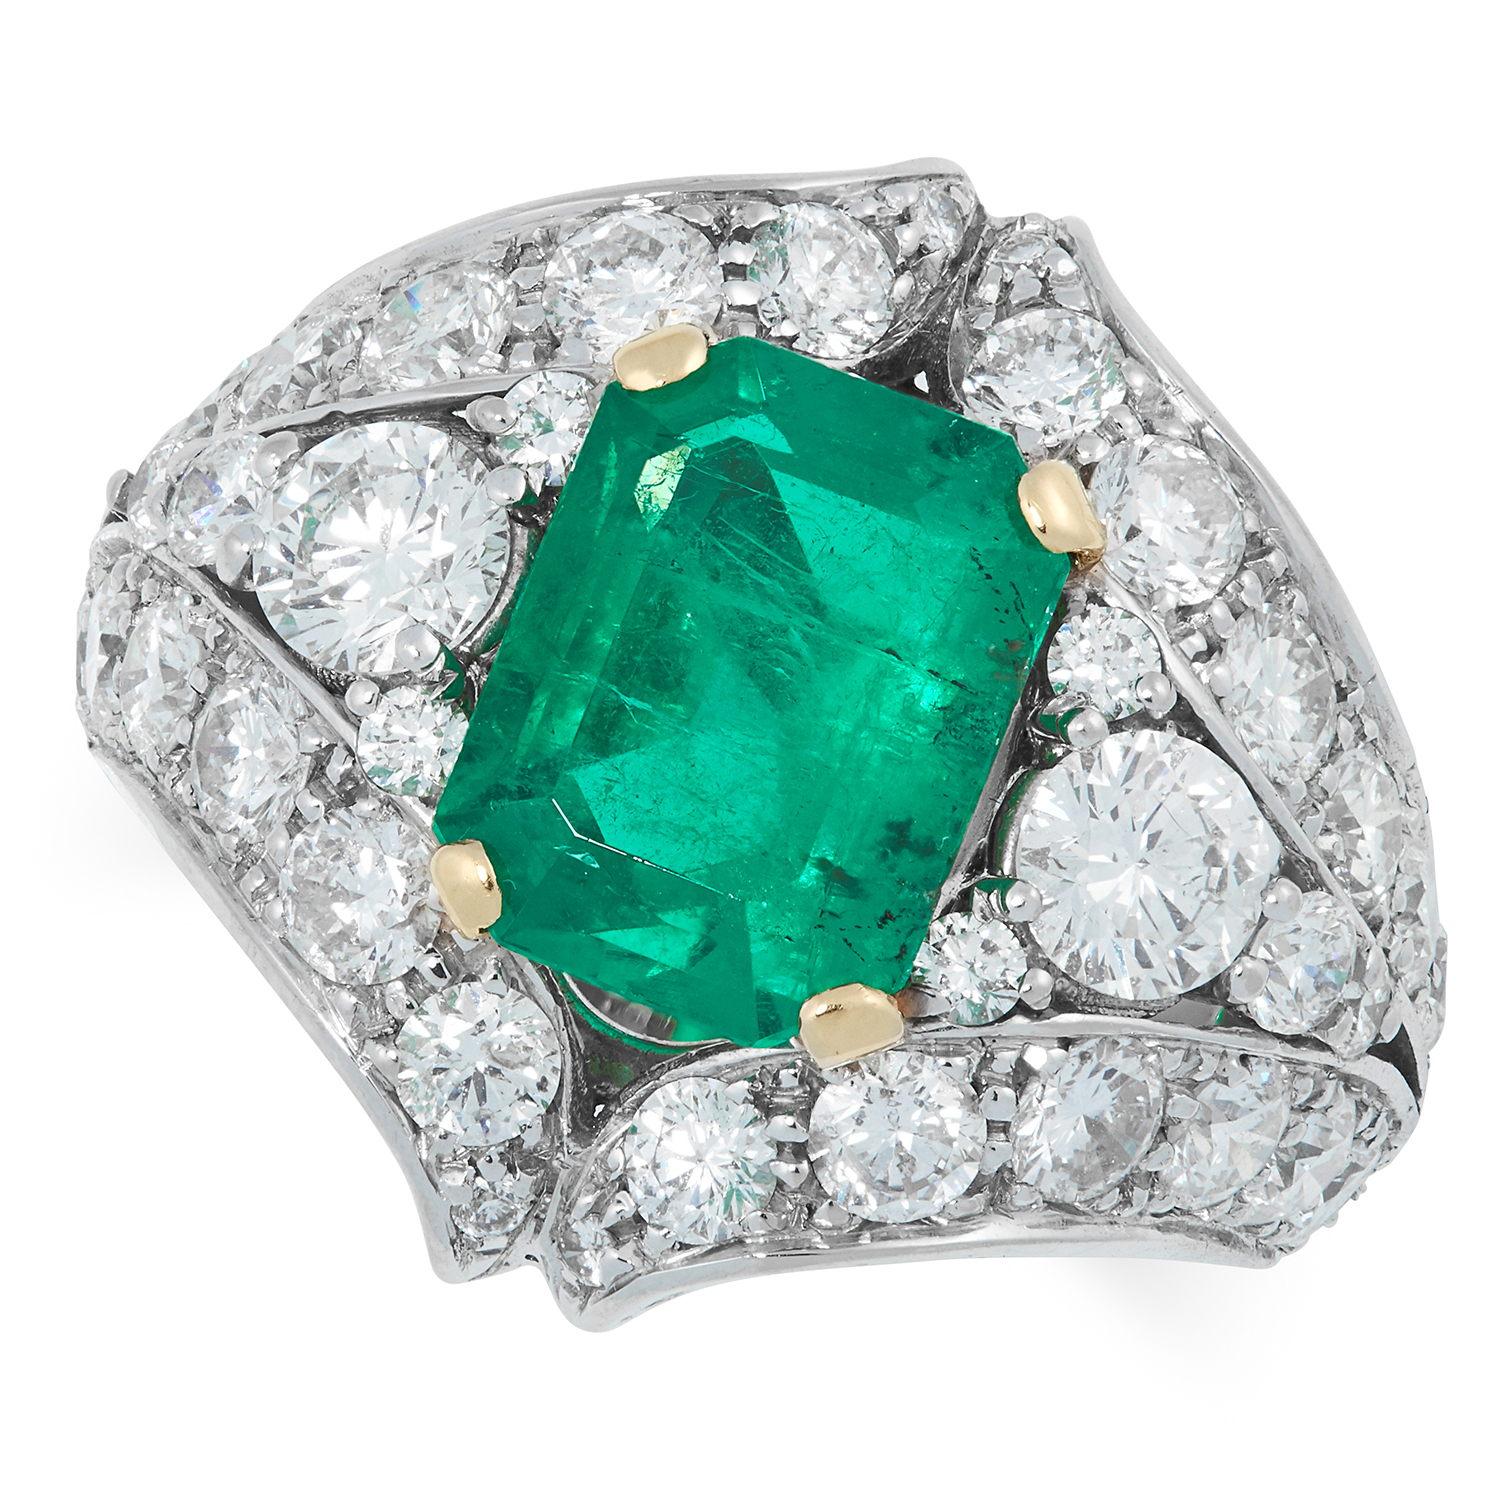 A COLOMBIAN EMERALD AND DIAMOND DRESS RING set with an emerald cut emerald of 4.20 carats, the mount